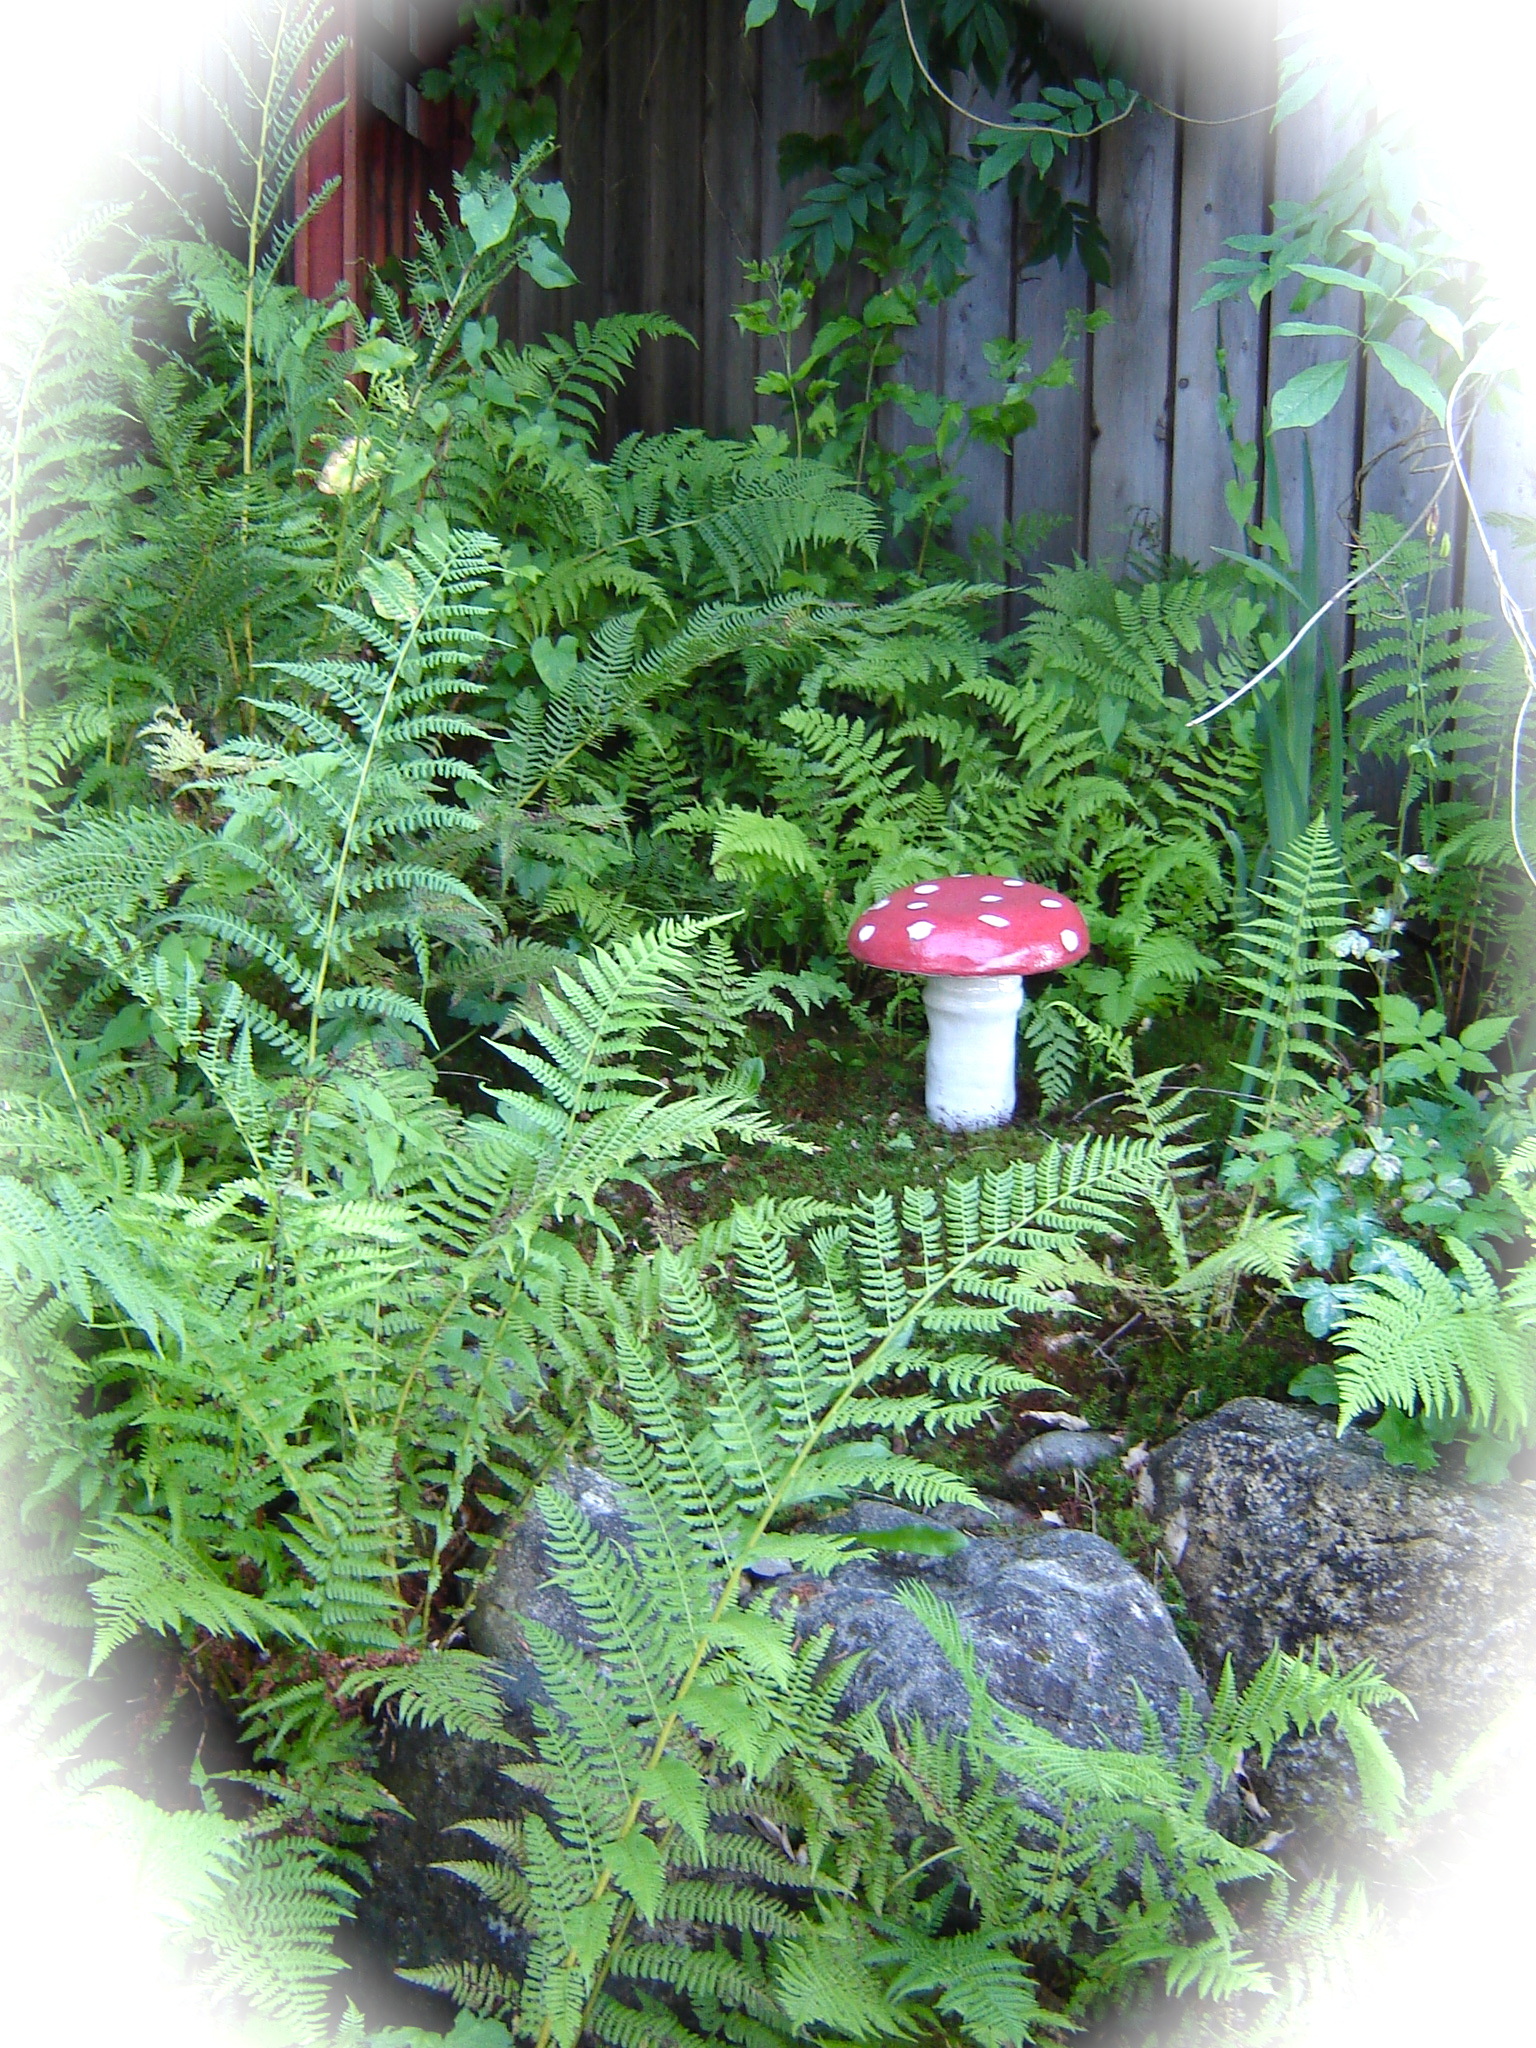 My mini-Secret Garden...a bit overgrown. An out of the way nook...with the giant mushroom I made last year.